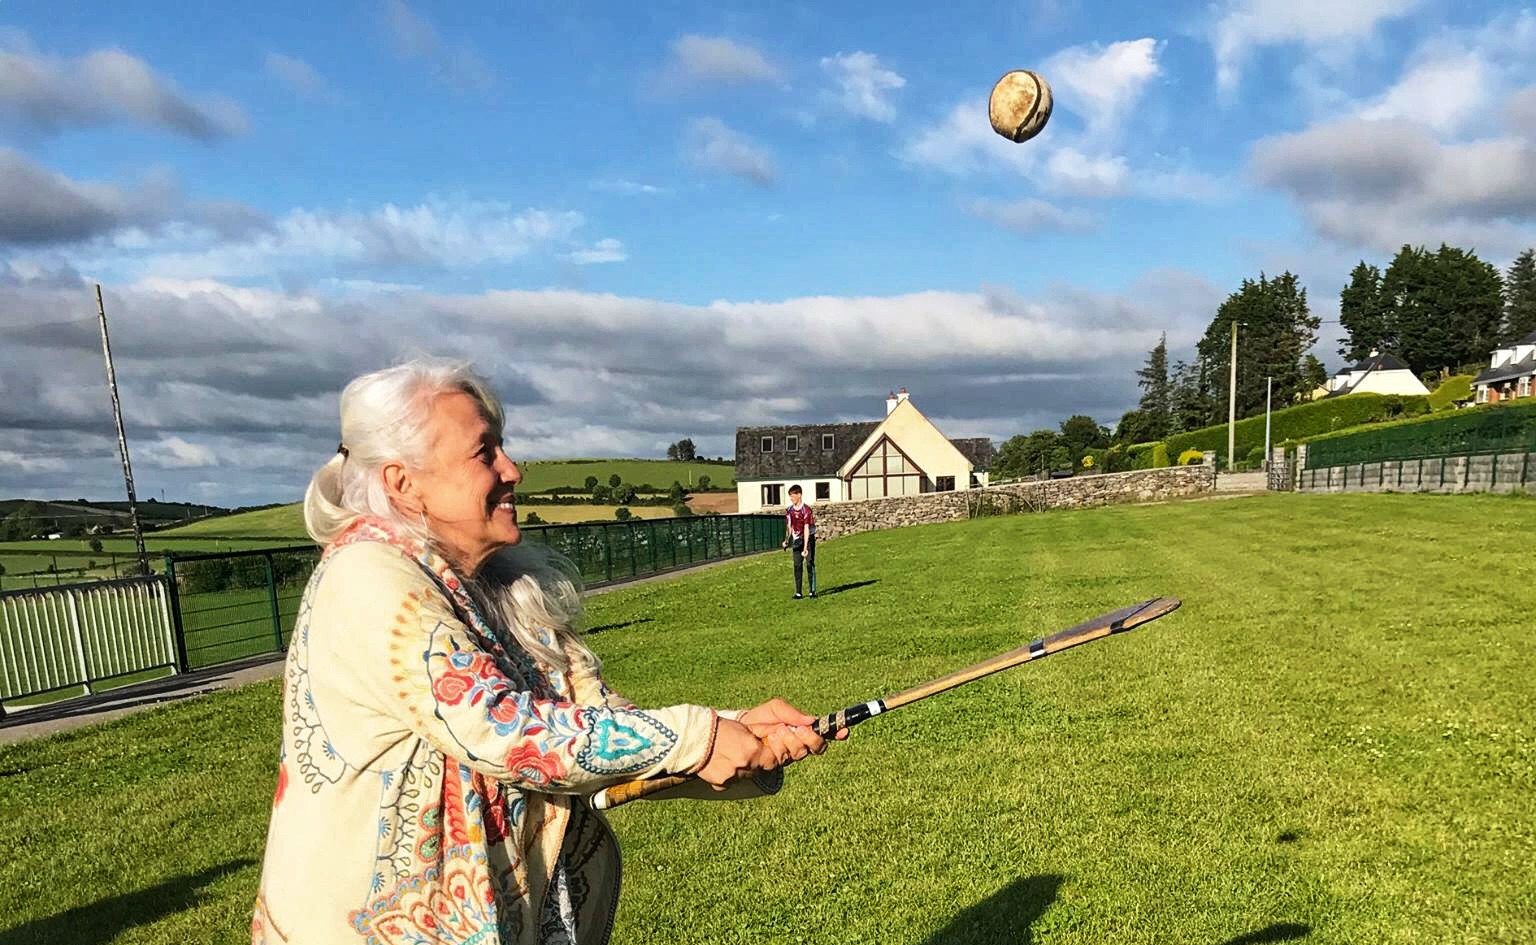 Hurling!  Ireland's ancient, national sport